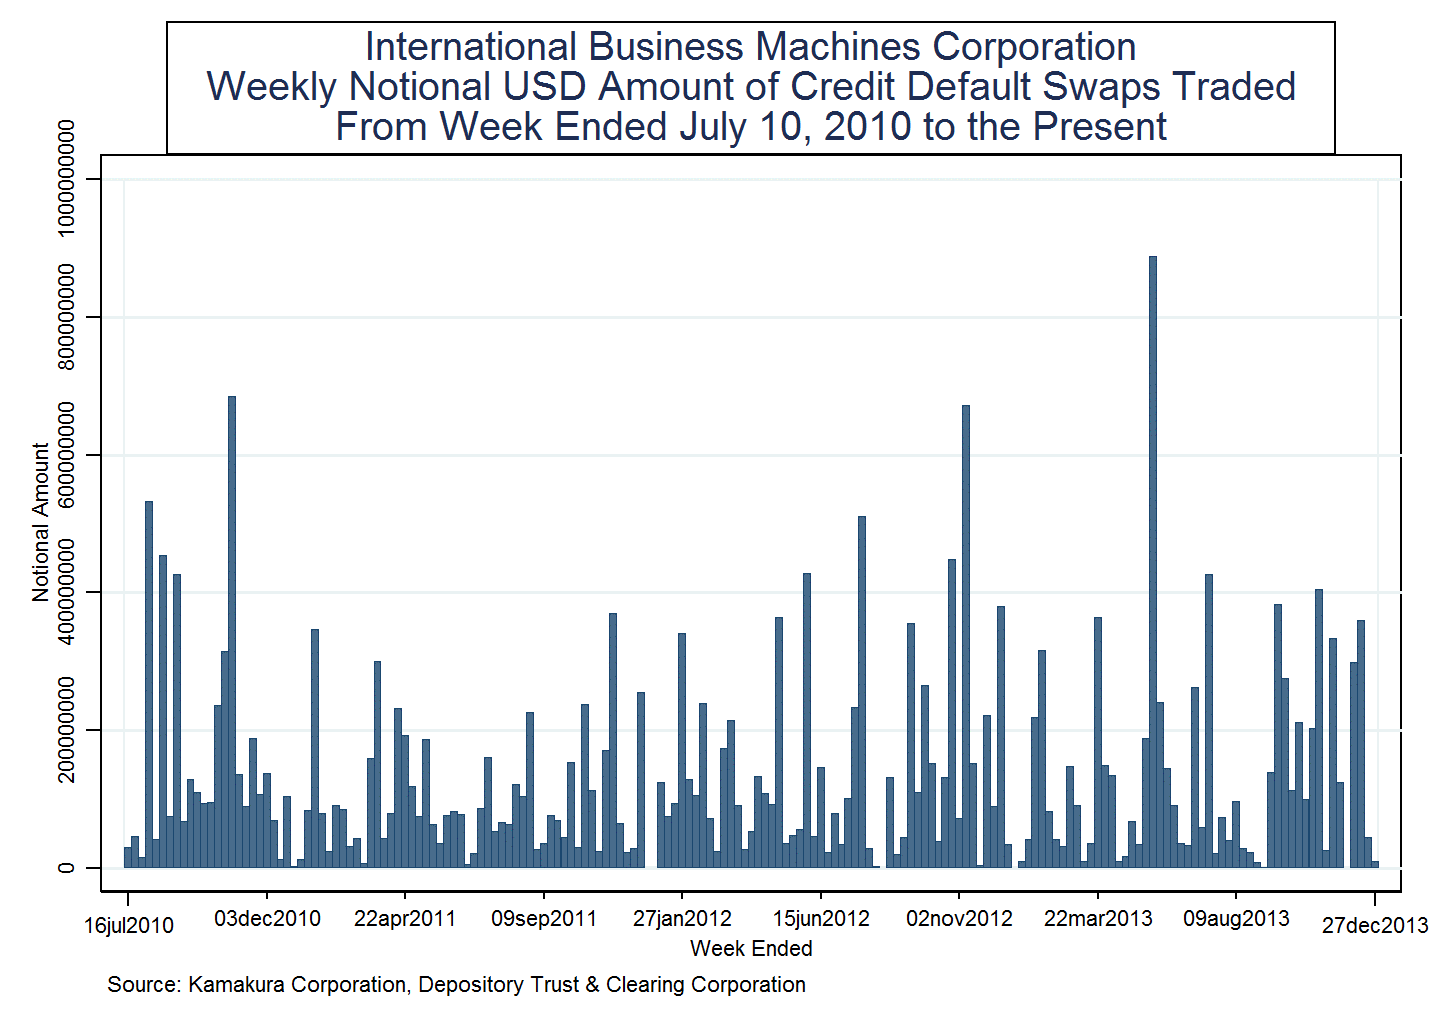 business environment of international business machines corporation Both international business machines corporation (nyse: ibm) and the coca-cola company (nyse: ko) have undergone many successful transitions over the years.